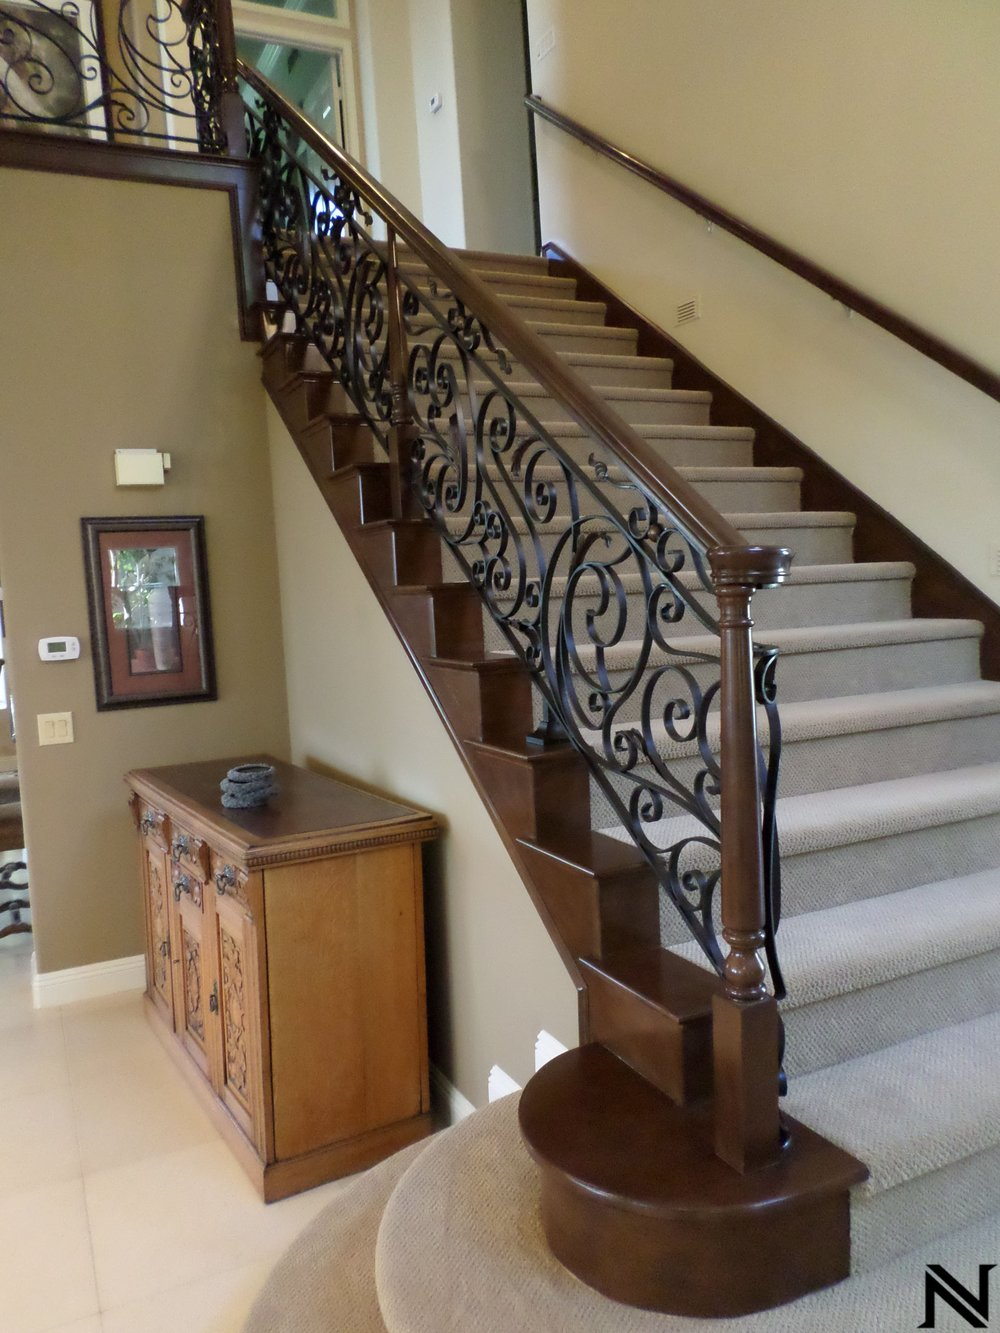 Wrought Iron Staircase Railing with Wooden AccentsStaircase Railings Design Ideas Naddour's Custom Metalworks